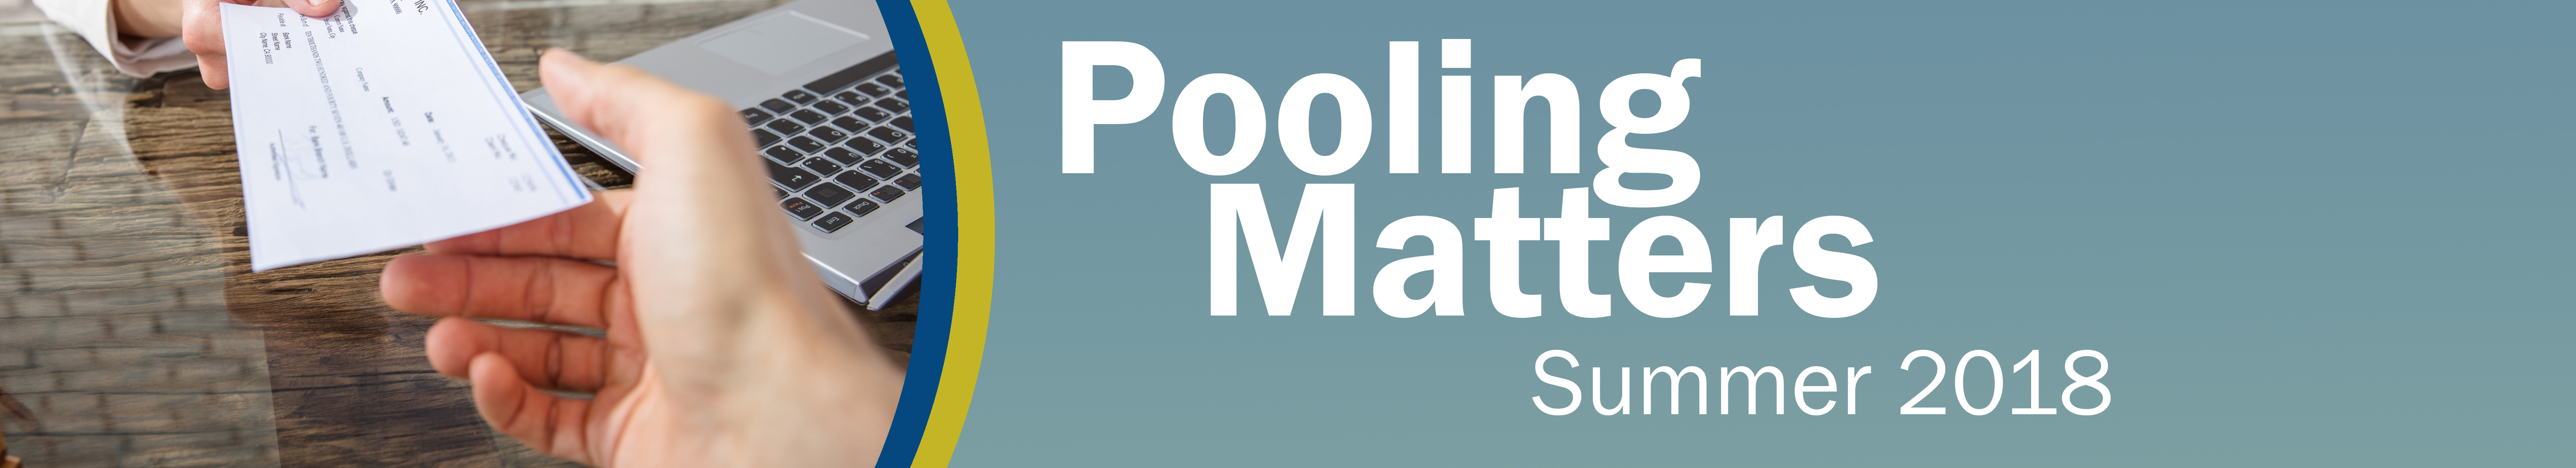 Pooling Matters: 2018 Summer Issue